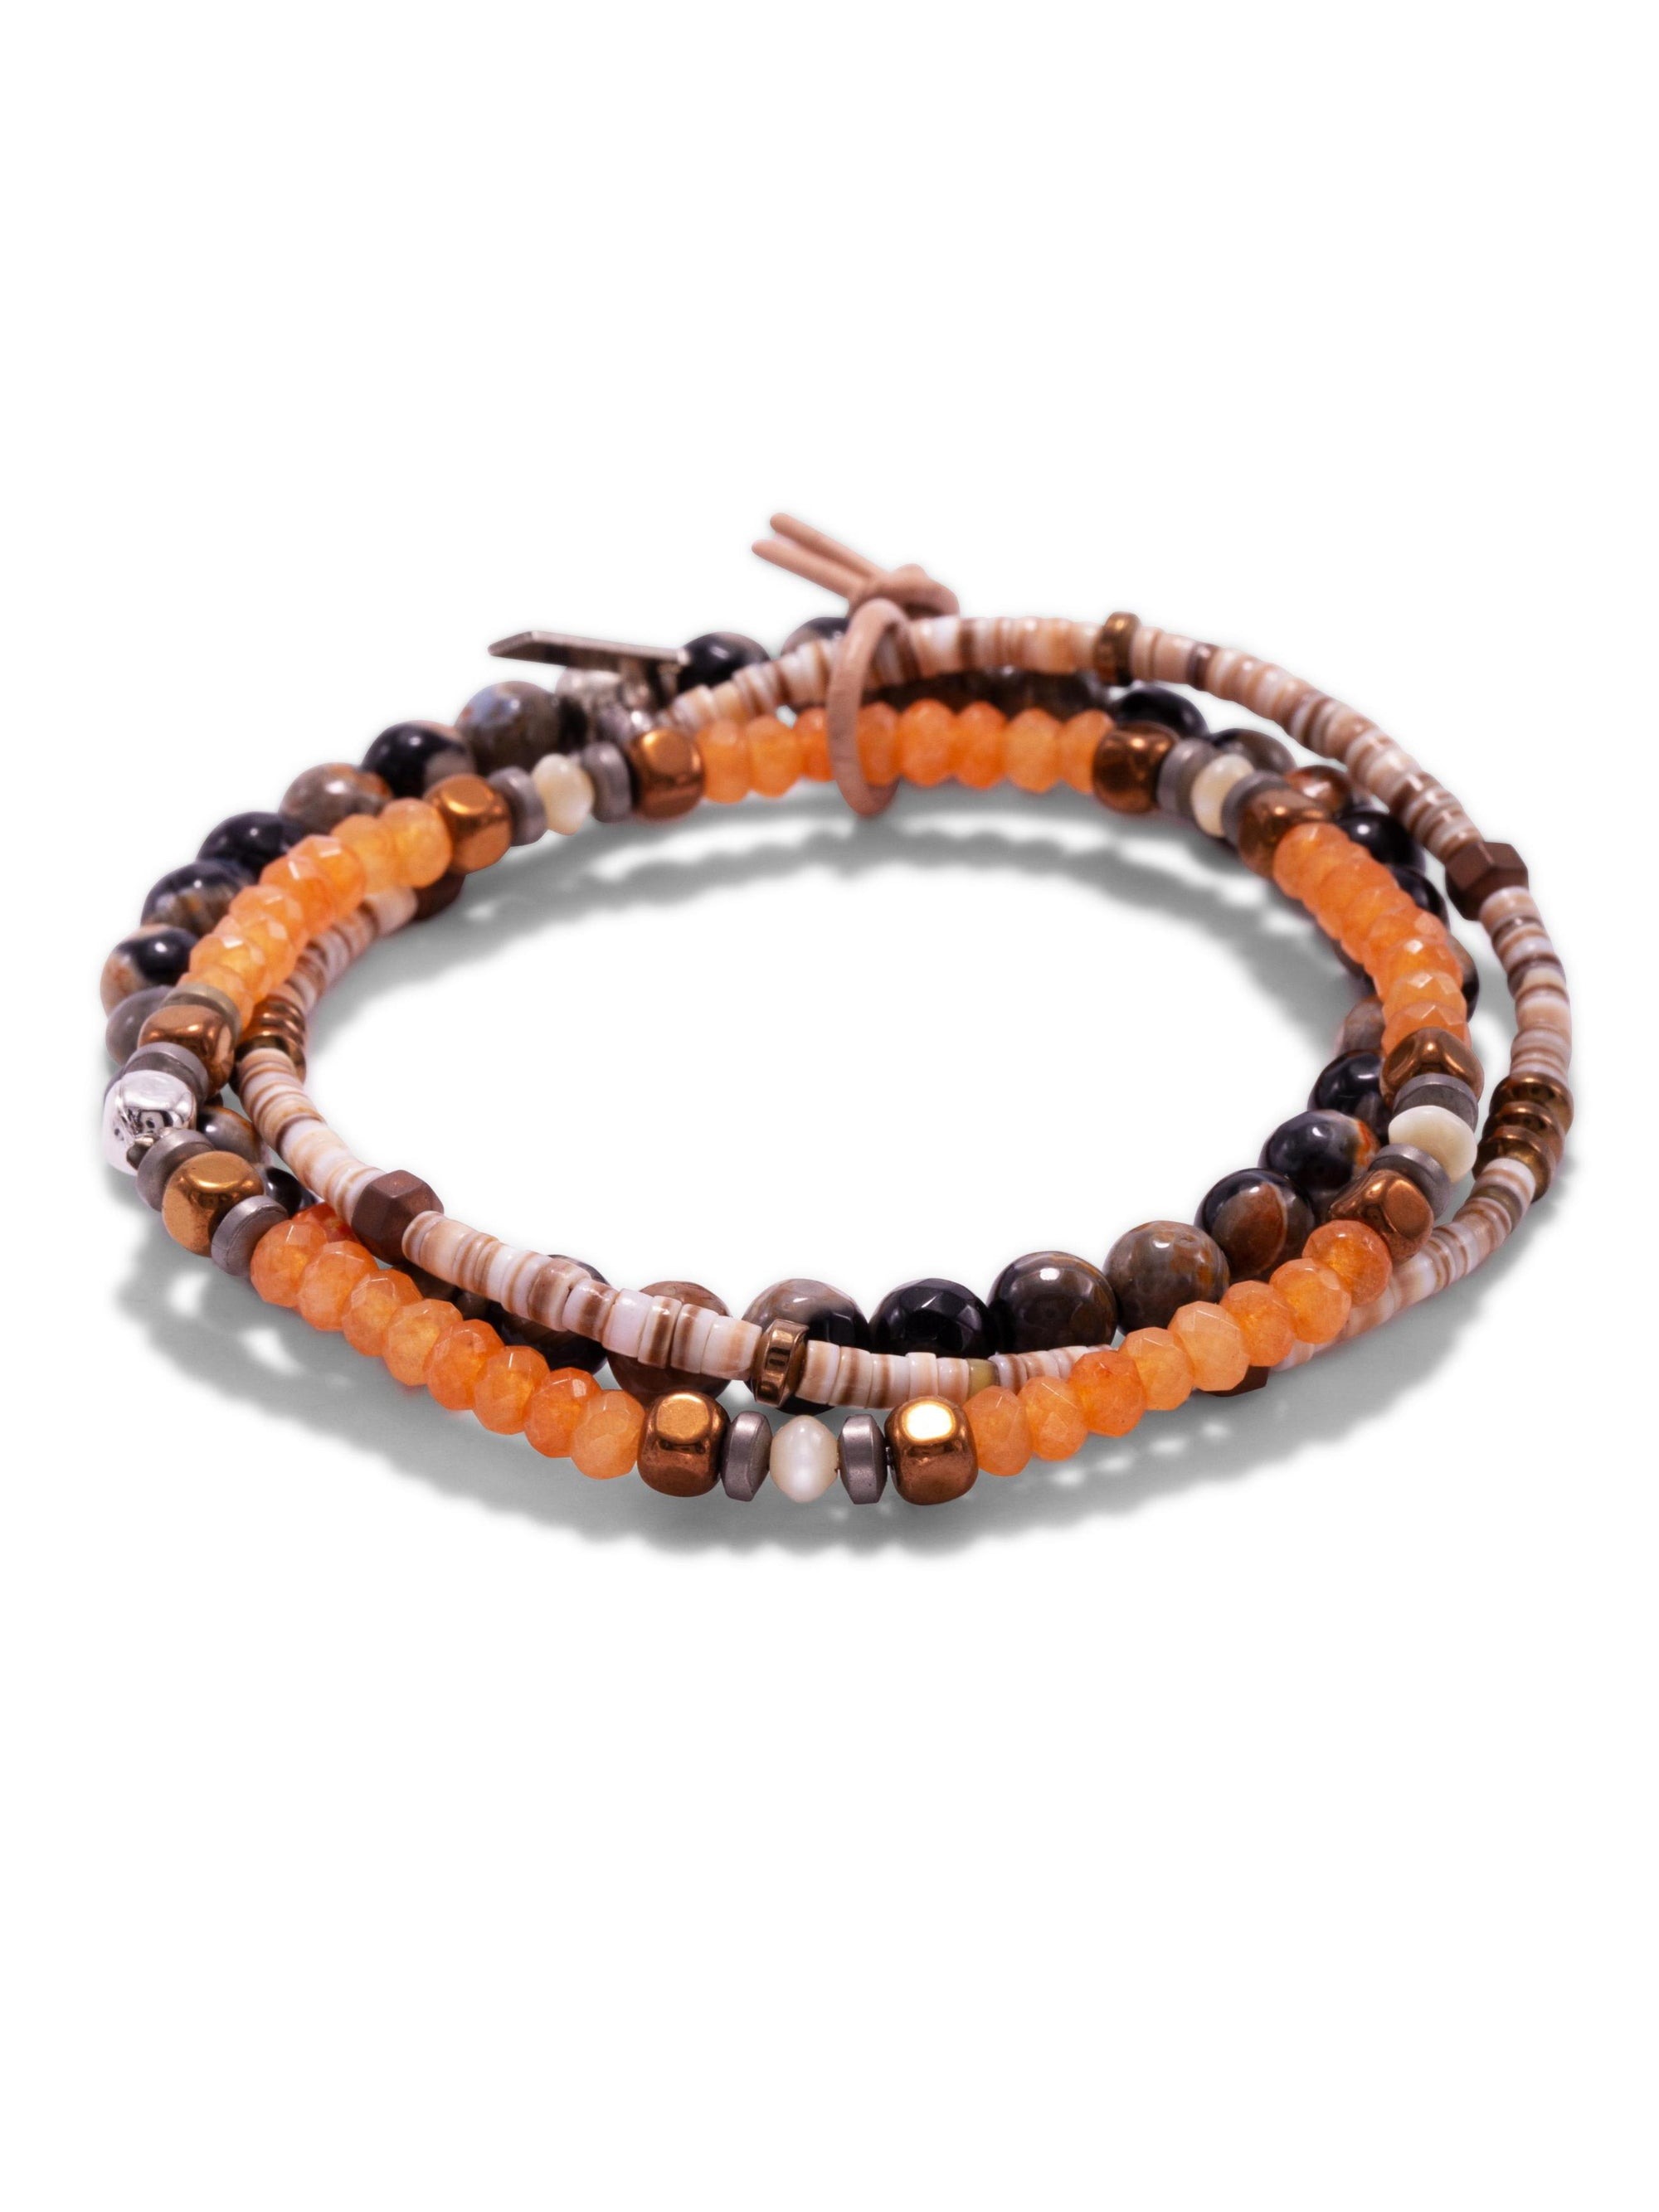 Orange Tiger Bracelet Set-Bracelets-JAREDJAMIN Jewelry Online-JAREDJAMIN - Fashion Jewelry & Accessories